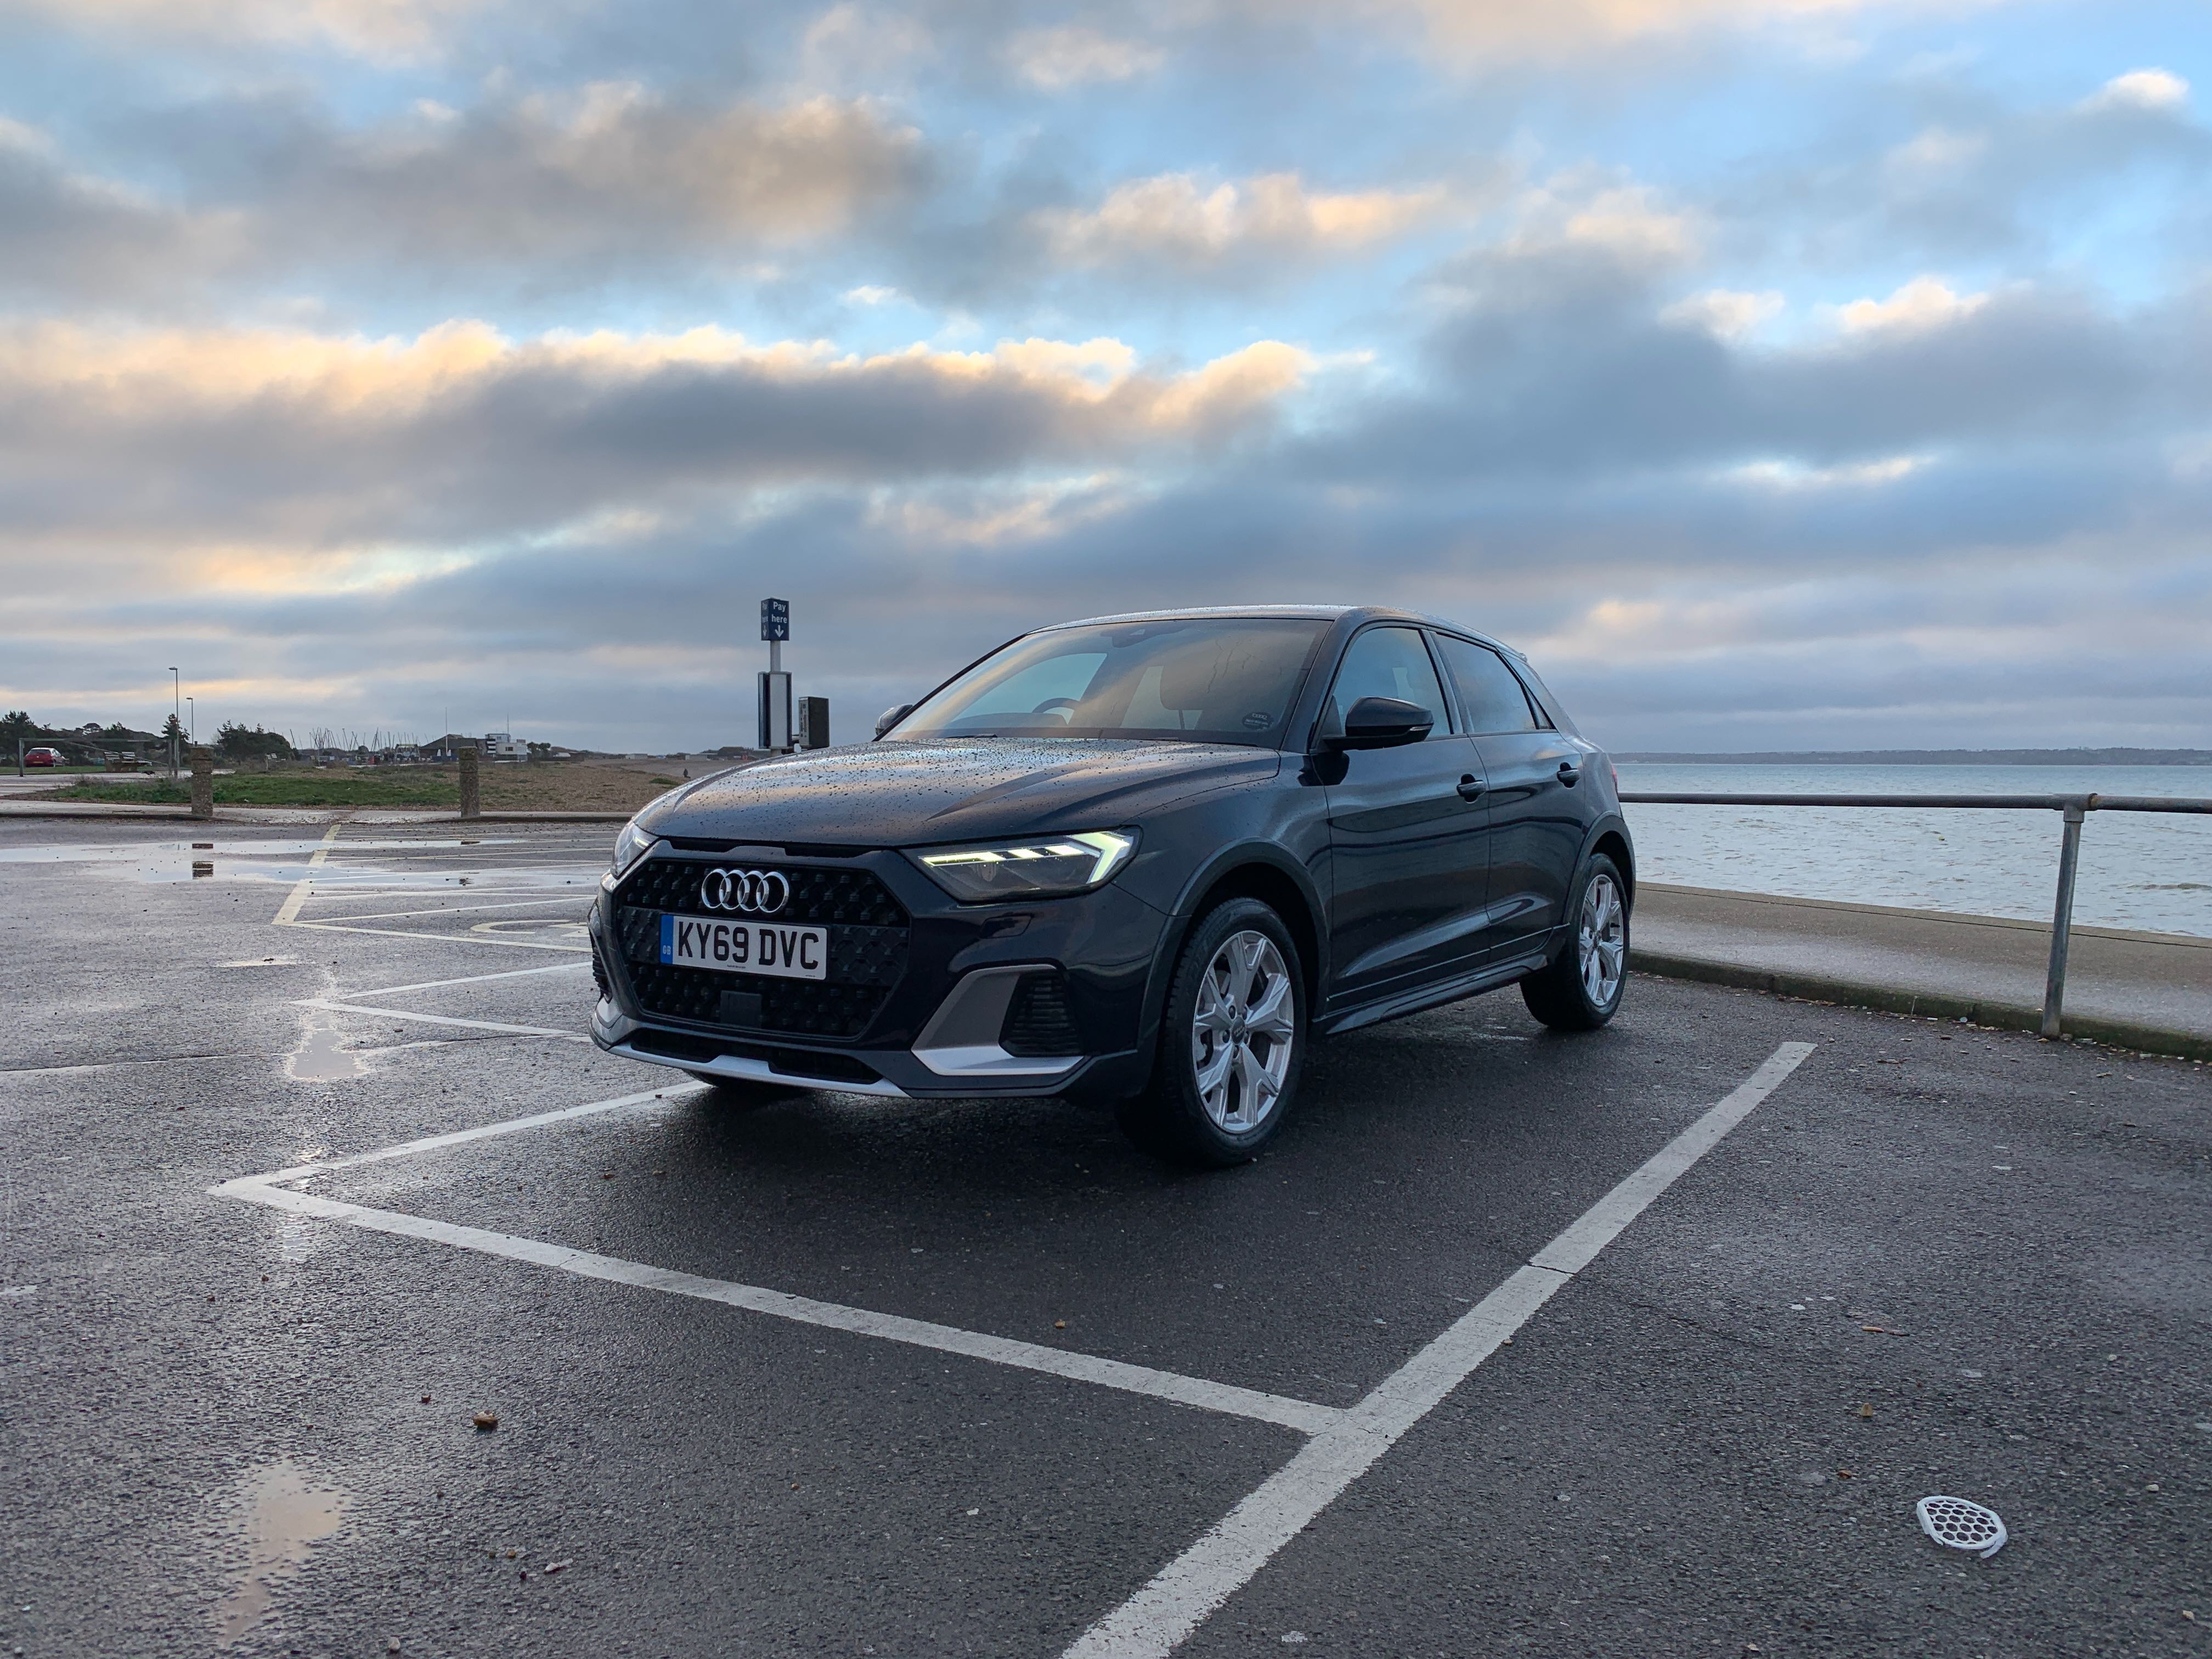 Despite its compact proportions, the A1 has quite a lot of presence